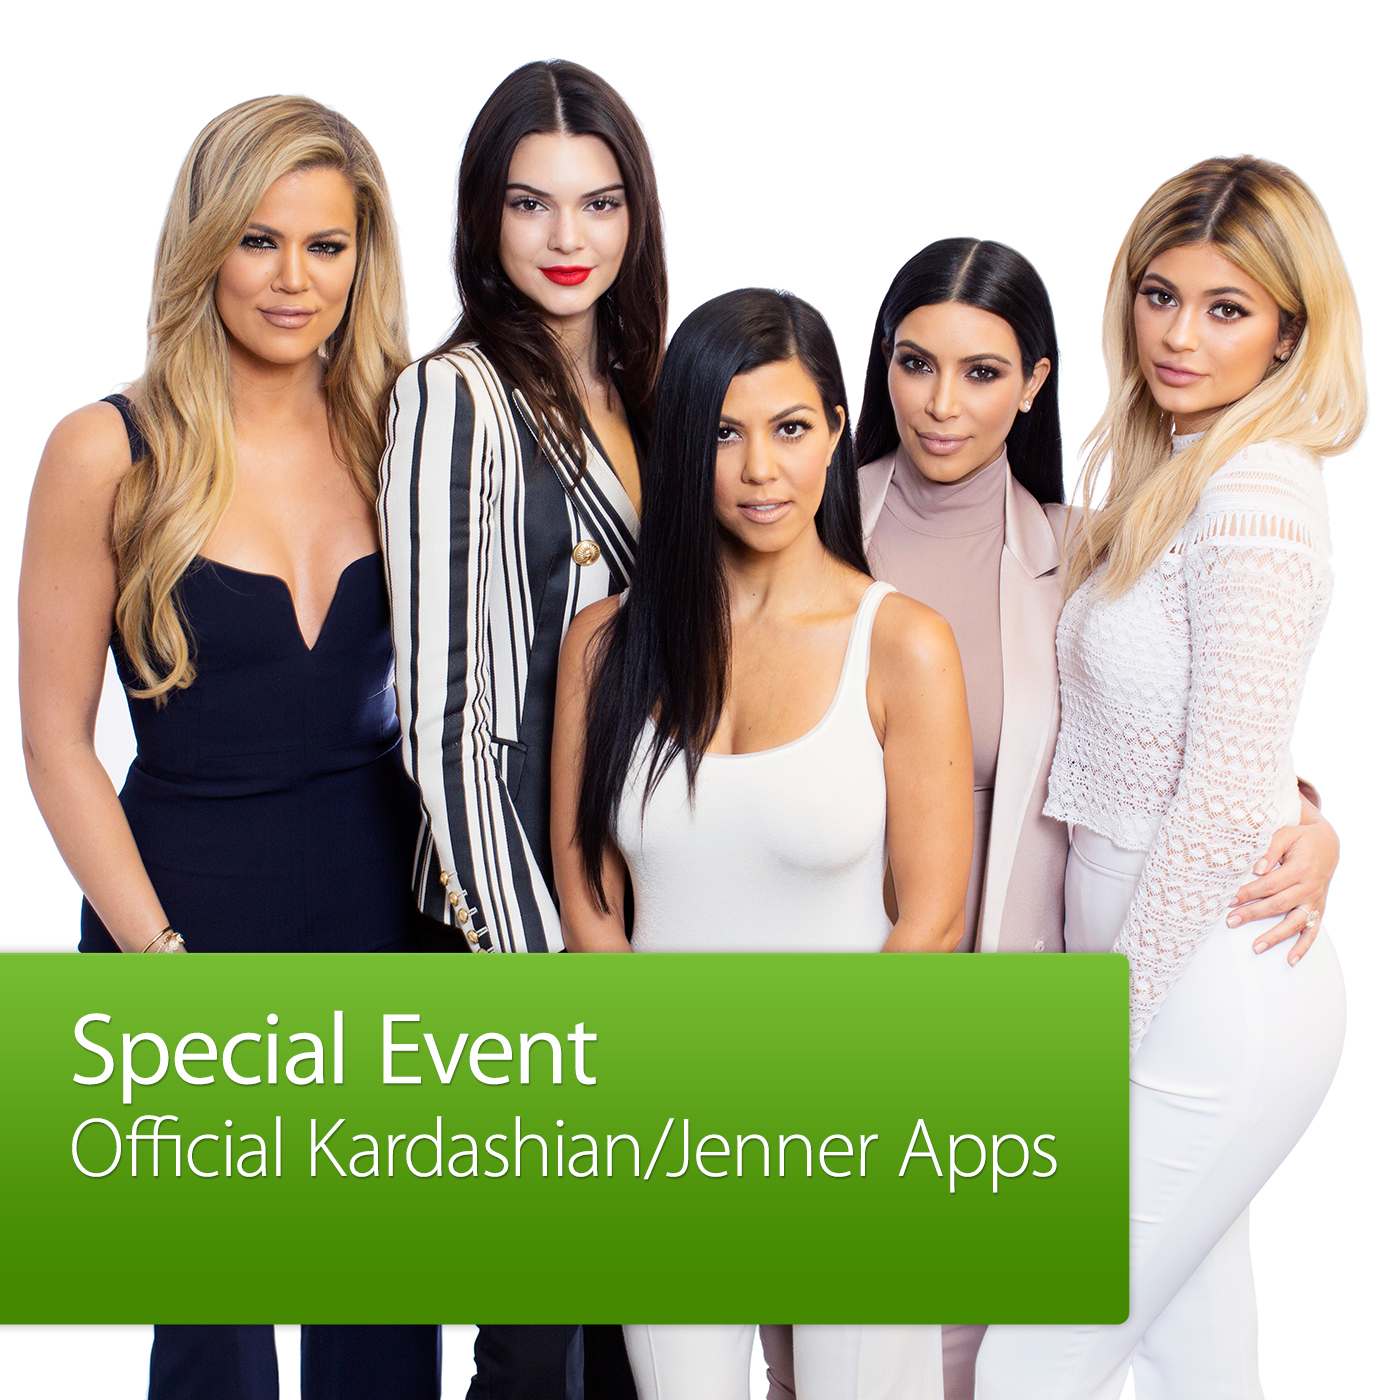 Official Kardashian/Jenner Apps: Special Event